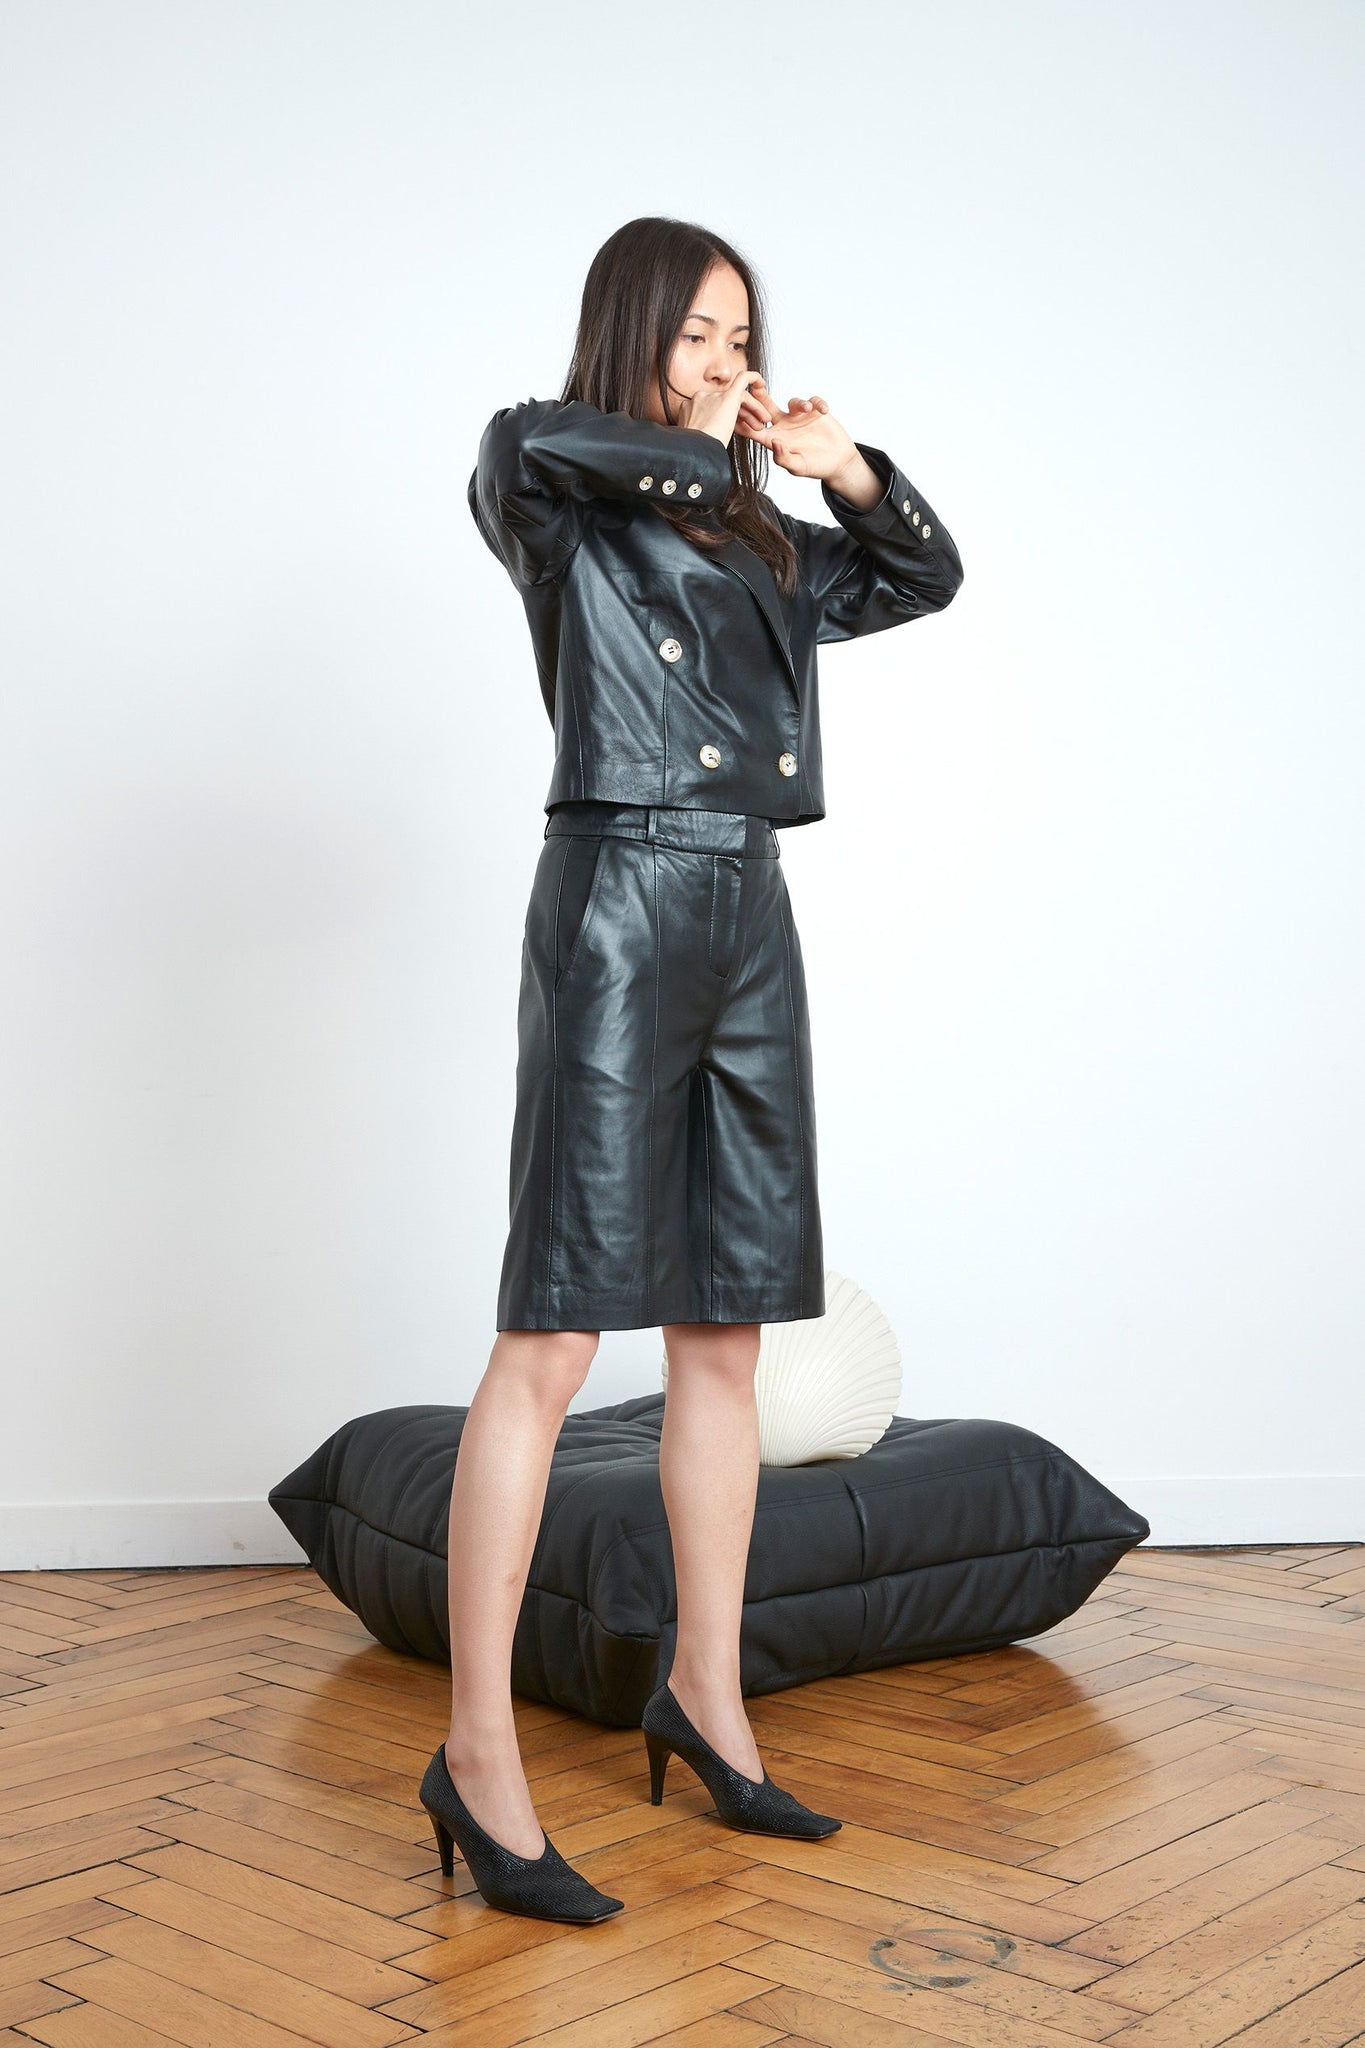 KILTAN LEATHER BERMUDA BY LOULOU STUDIO IN BLACK